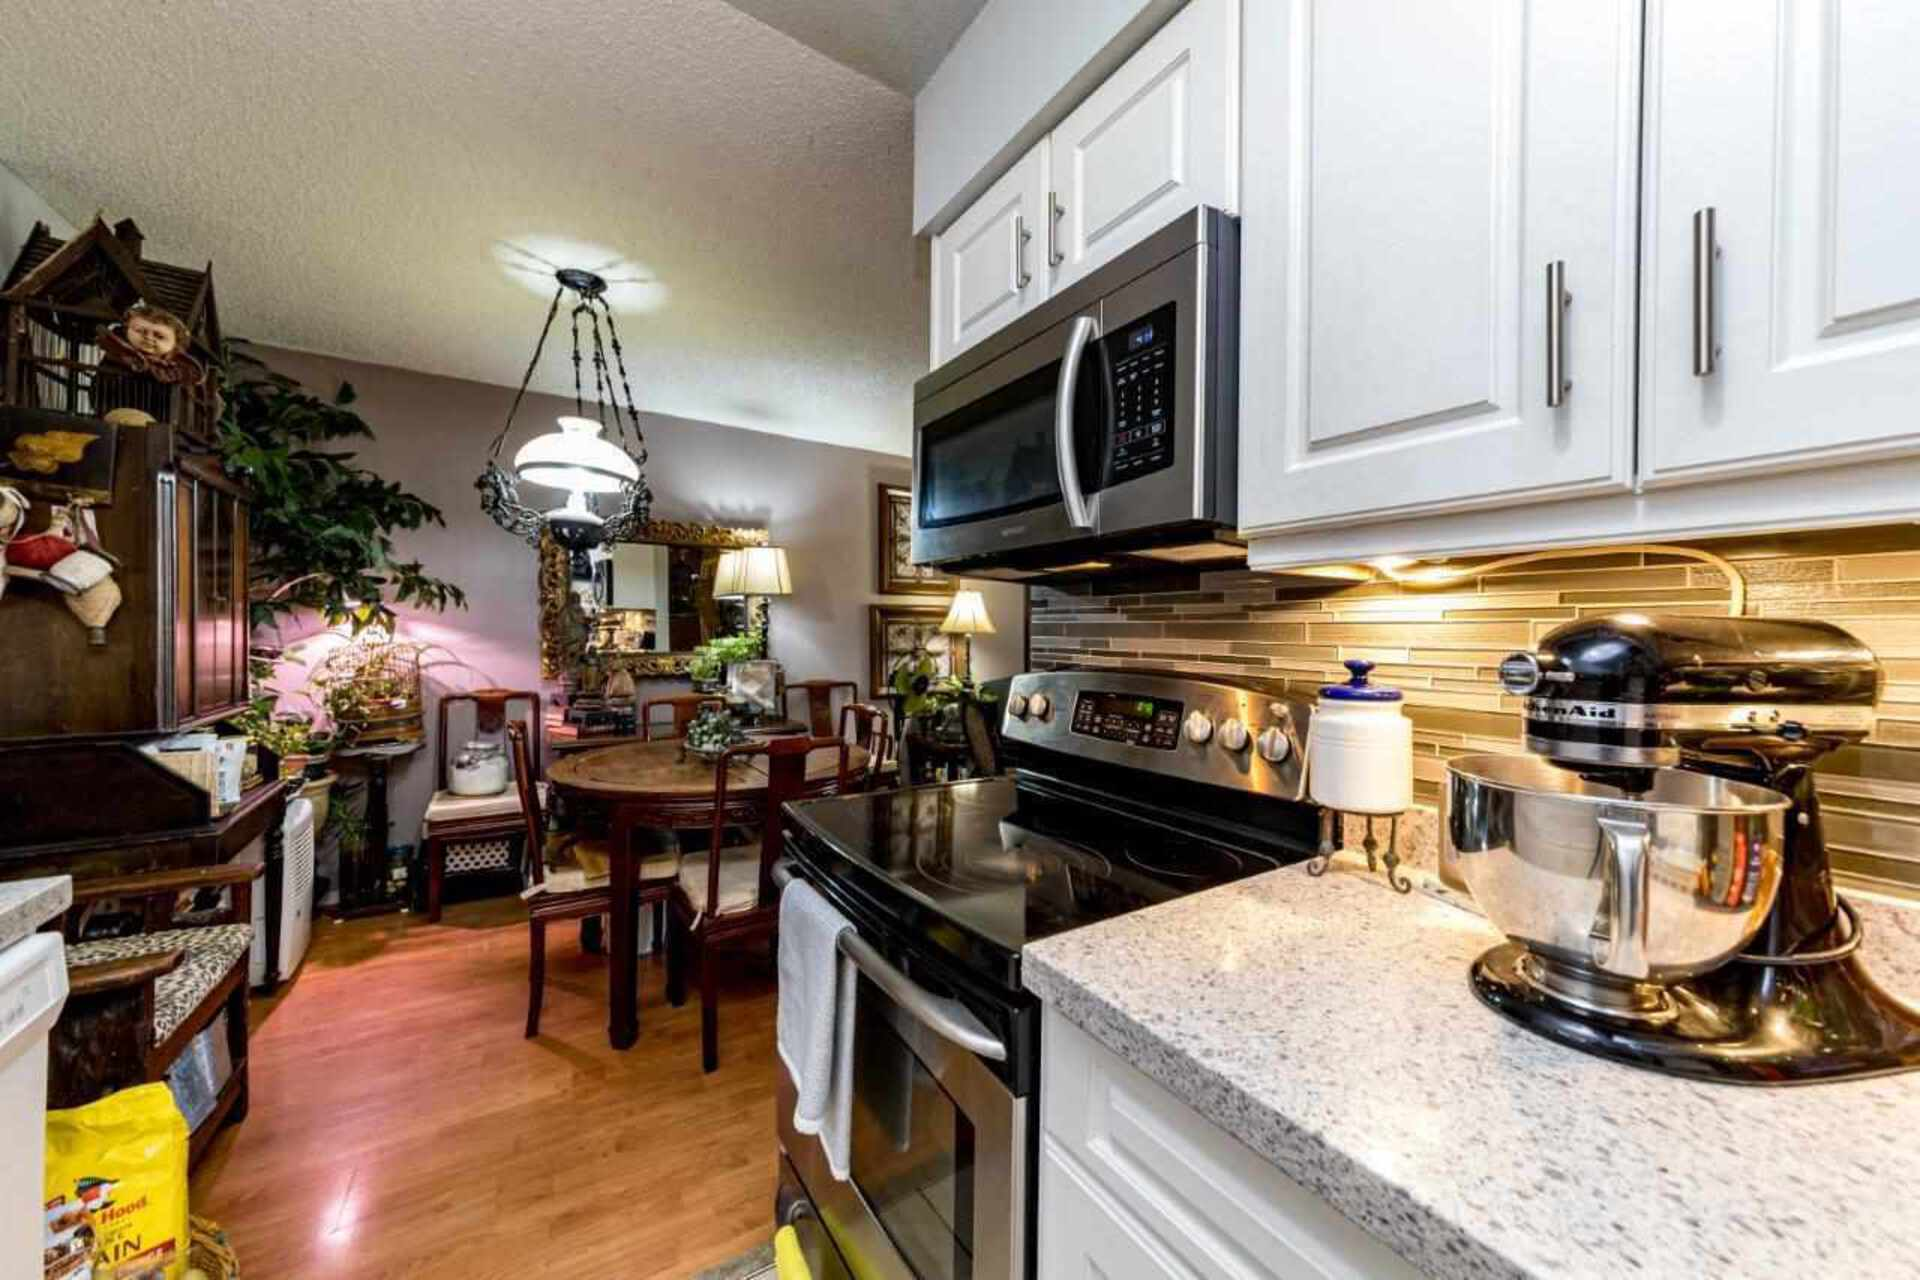 5932-patterson-avenue-metrotown-burnaby-south-09 at 501 - 5932 Patterson Avenue, Metrotown, Burnaby South